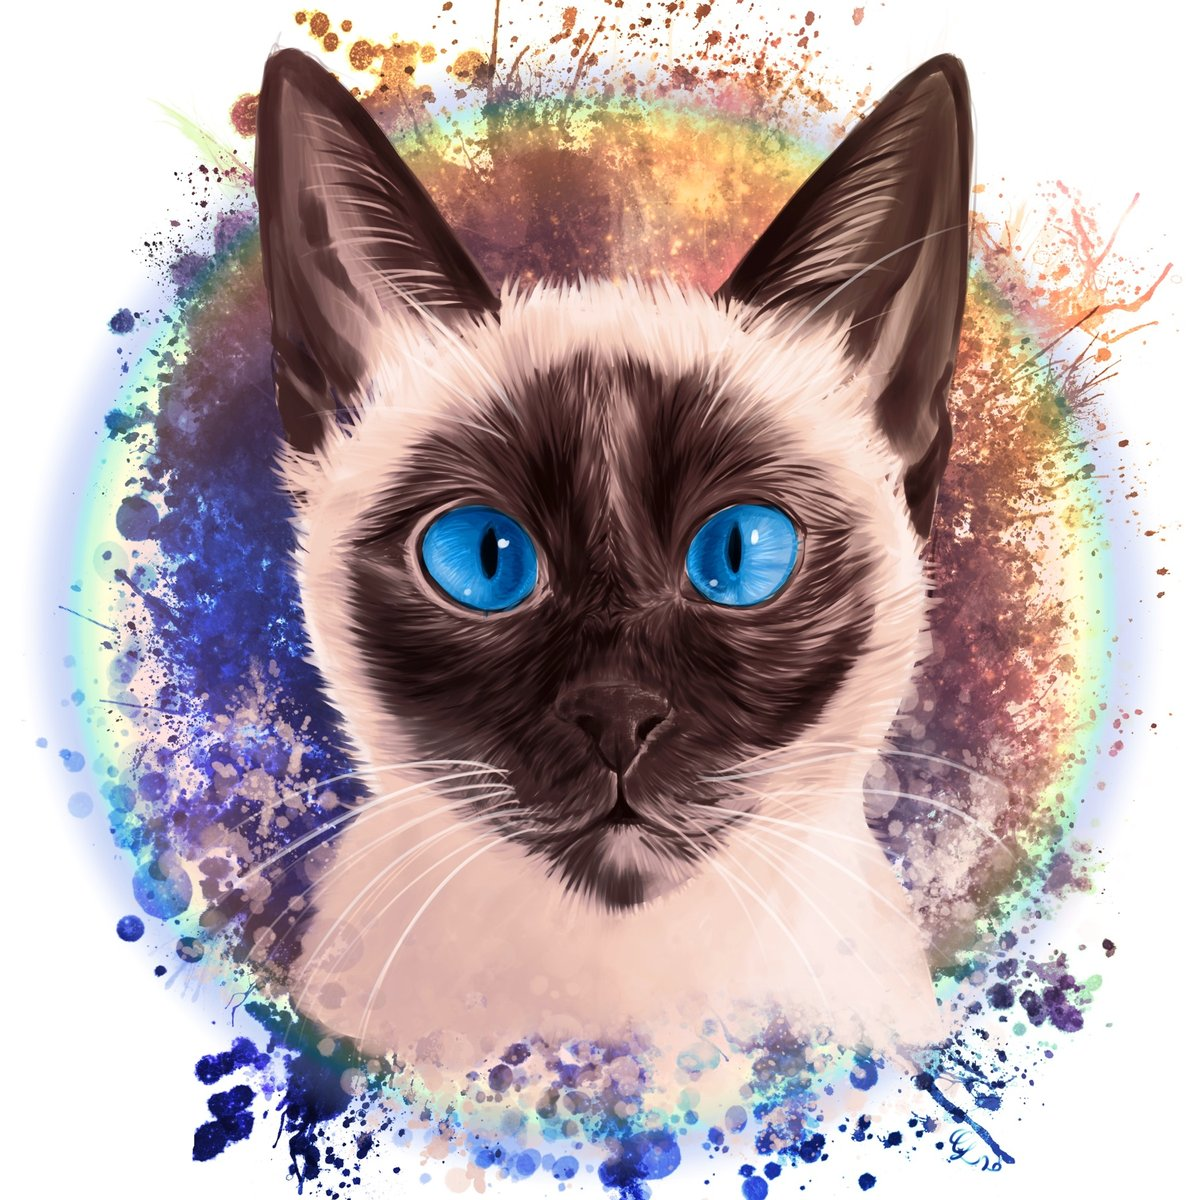 Today's painting is of Ross' (@rubberninja) new kitten! I couldn't resist doing a painting! I hope Orph won't be too jealous...perhaps he needs one too? #art #digitalart #csp #clipstudiopaint #ipad #ipadart #artist #catpainting #petpainting #petportrait